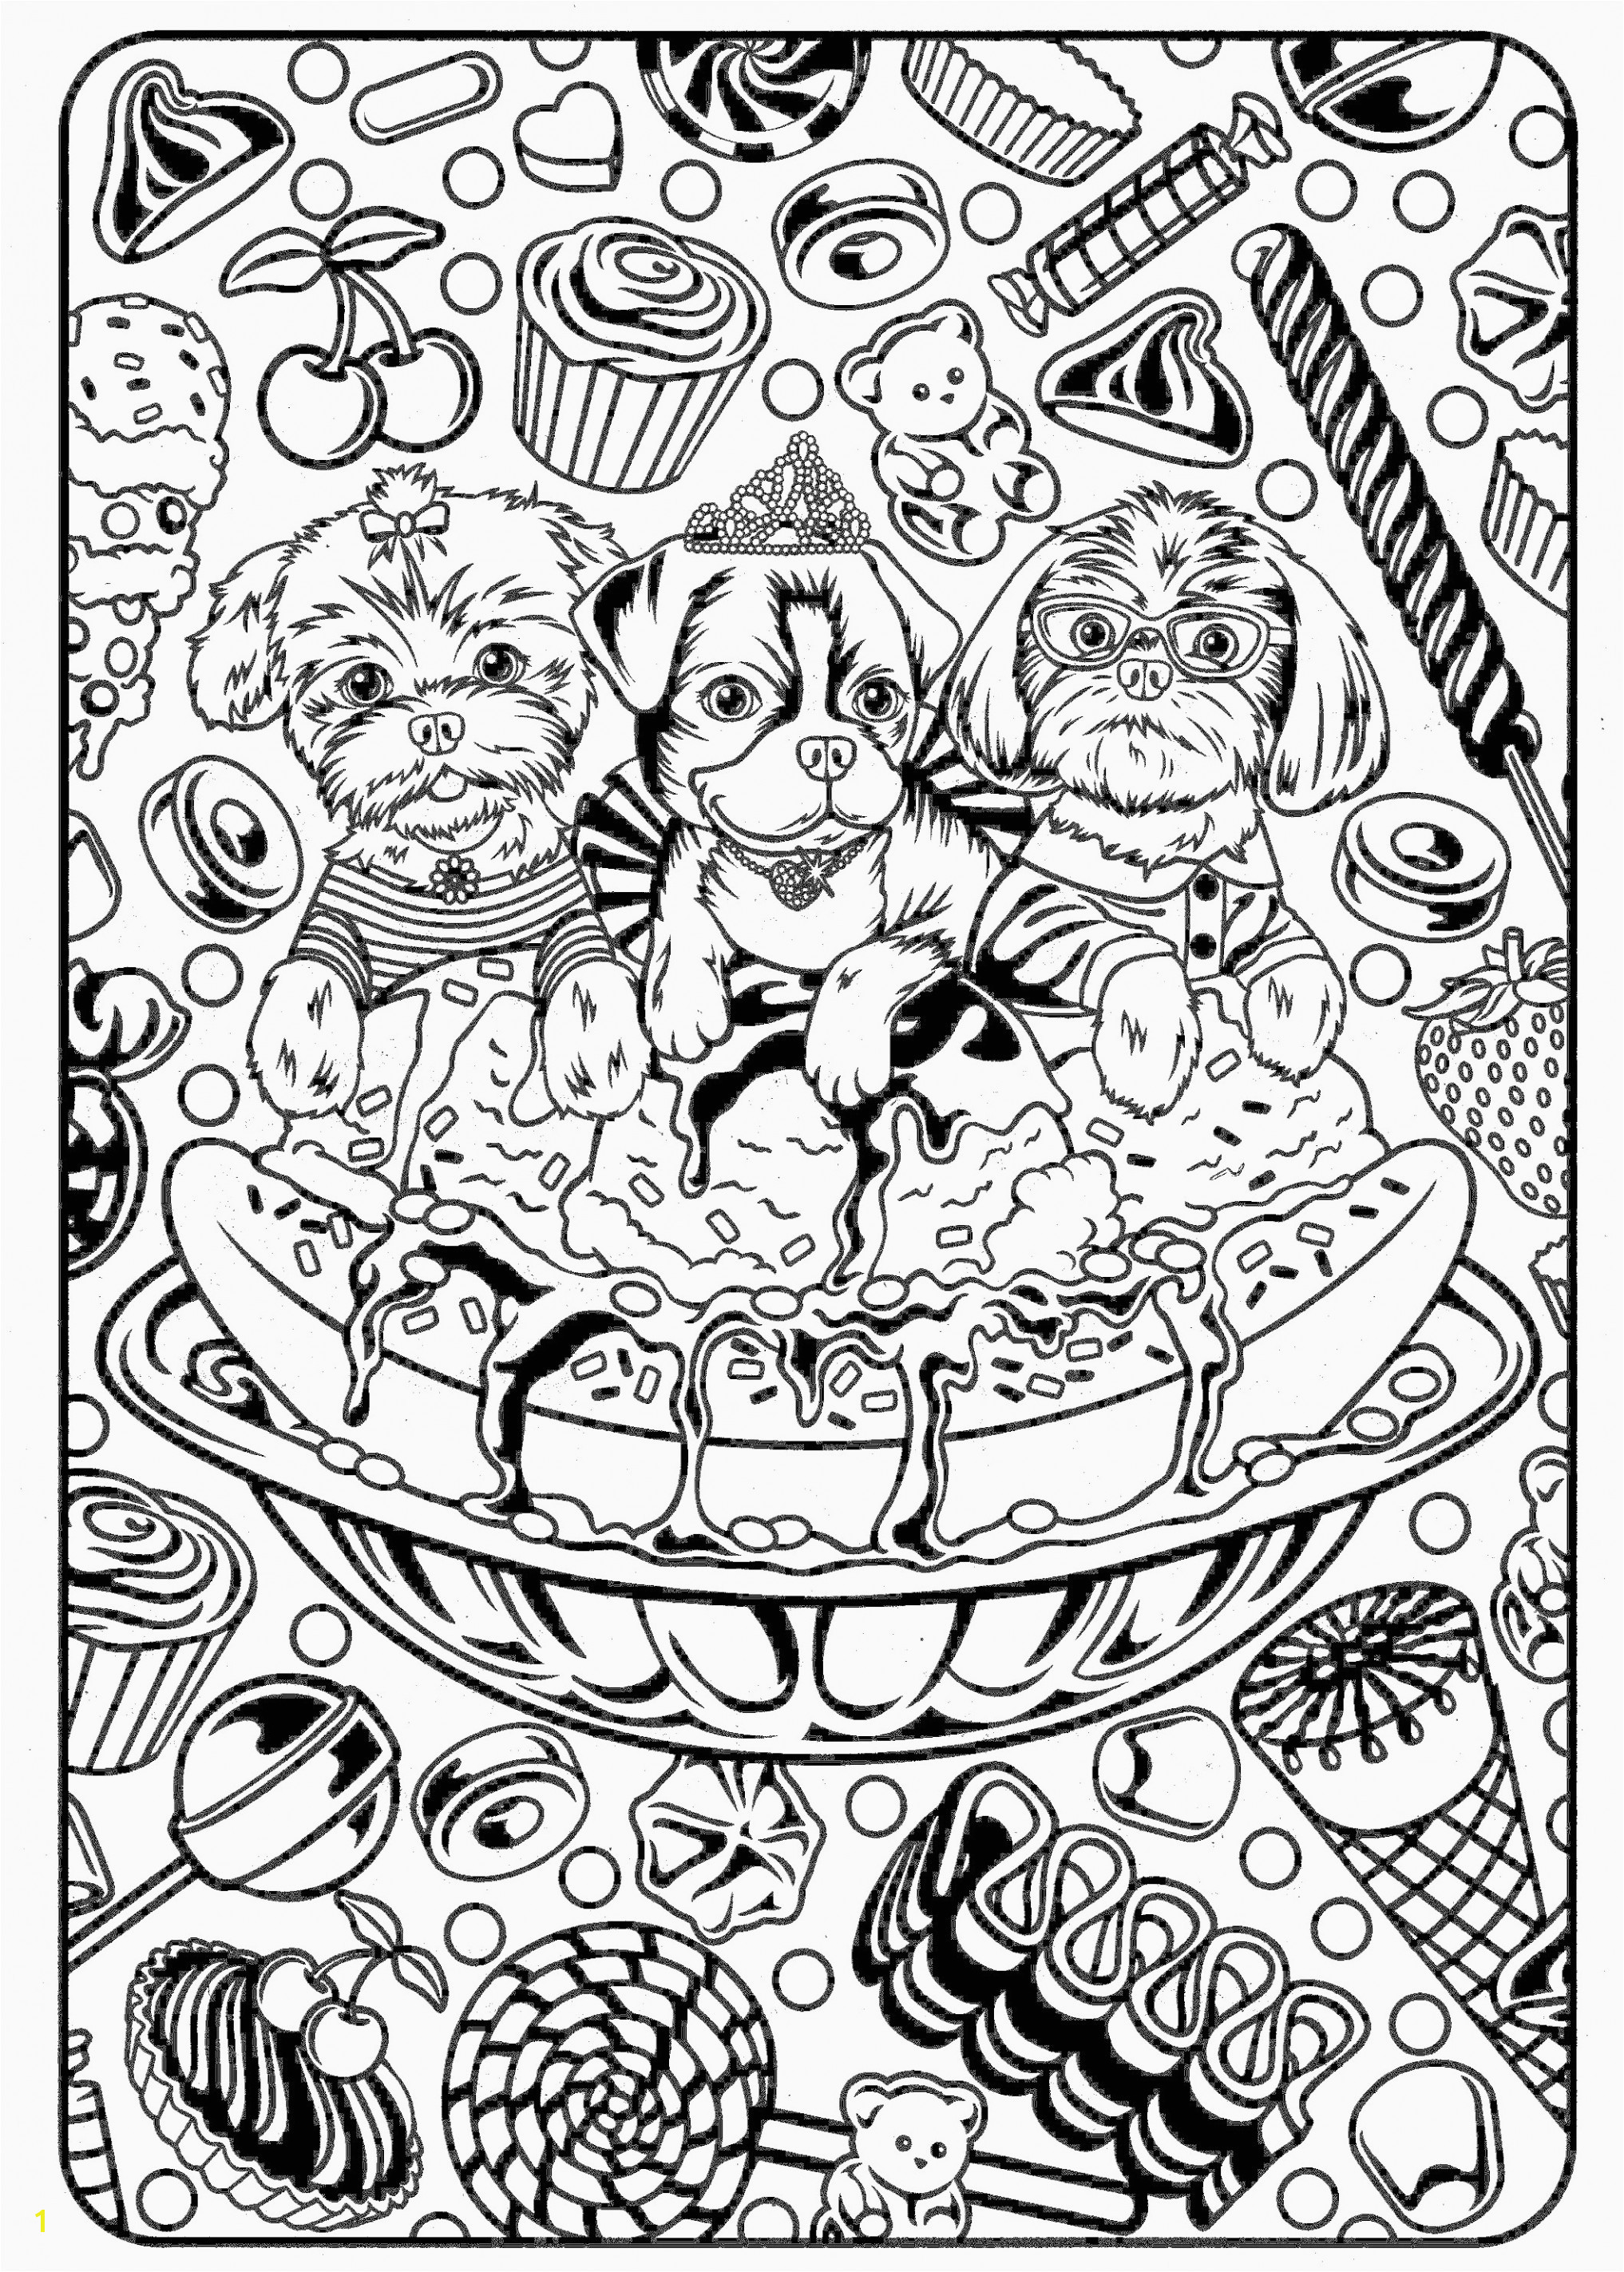 Disney Printable Coloring Pages Halloween Disney Halloween Coloring Sheets Printable Home Coloring Pages Best